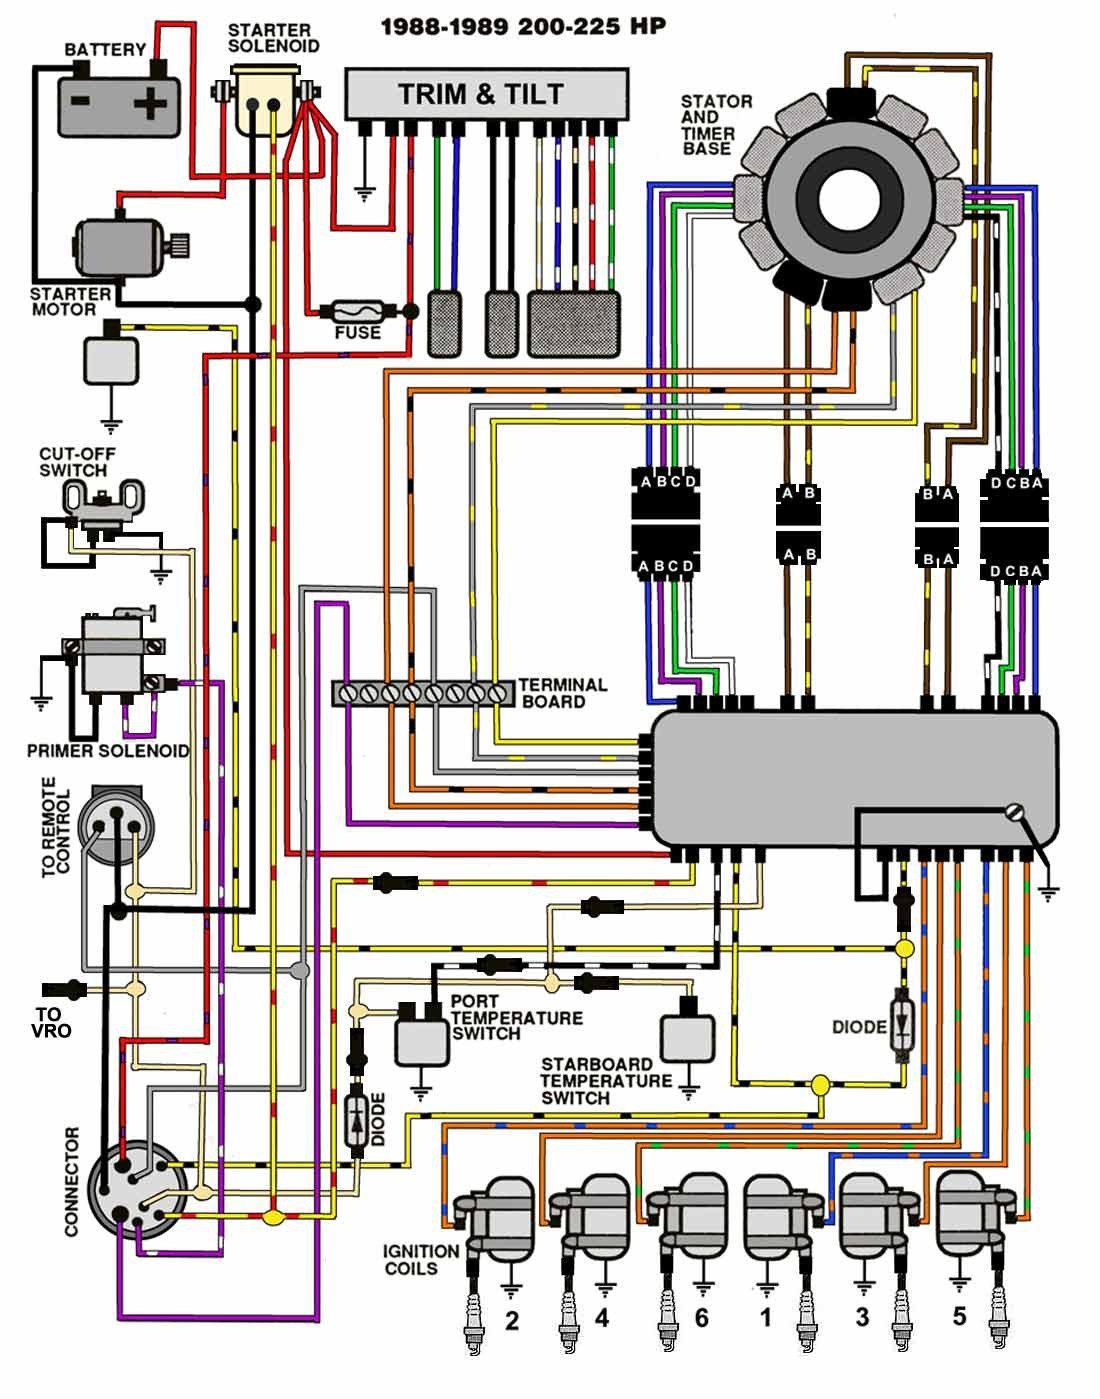 Yamaha Outboard Wiring Harness Diagram 90hp Free Download 1988 Data Diagrams U2022 250 At